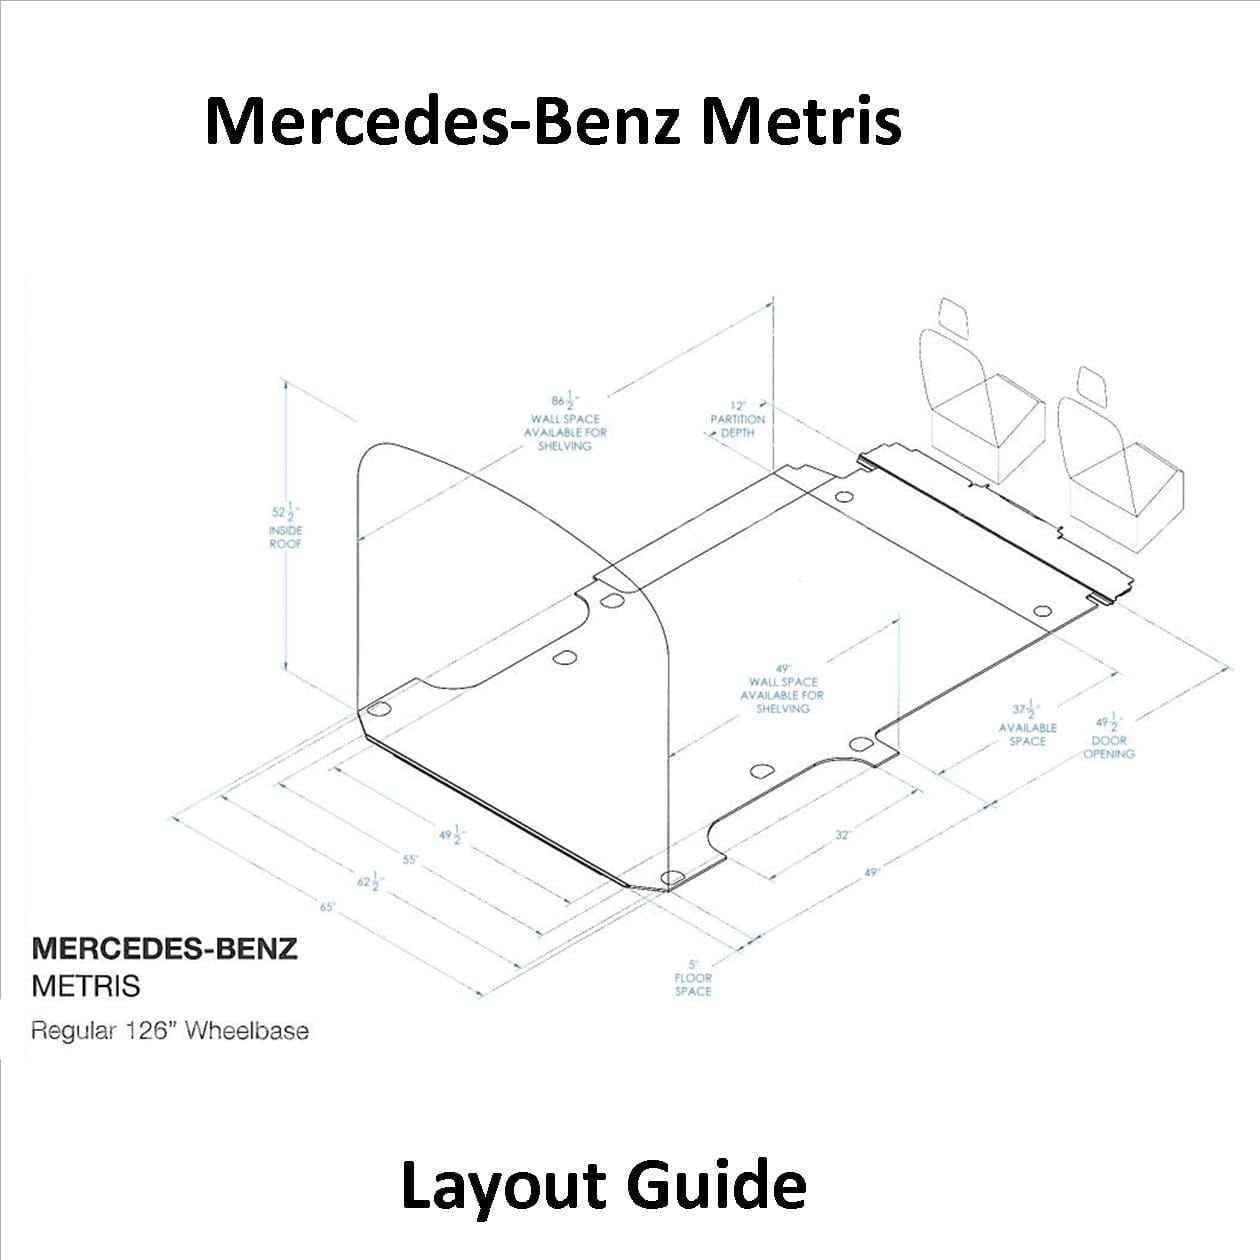 Mercedes Benz Metris Layout Guide